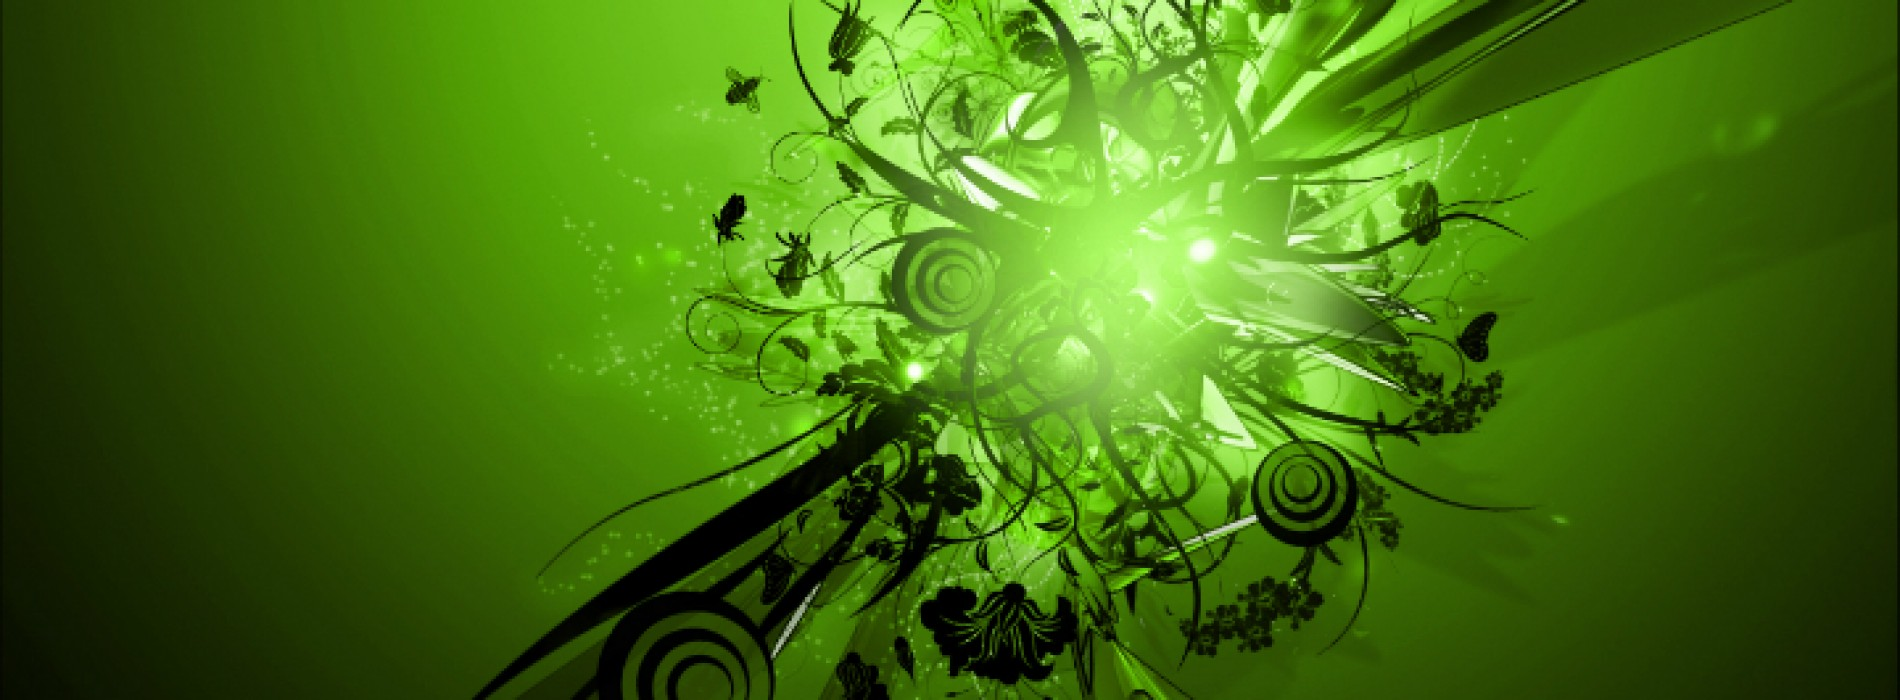 12 wallpapers for your Android device (Greens)